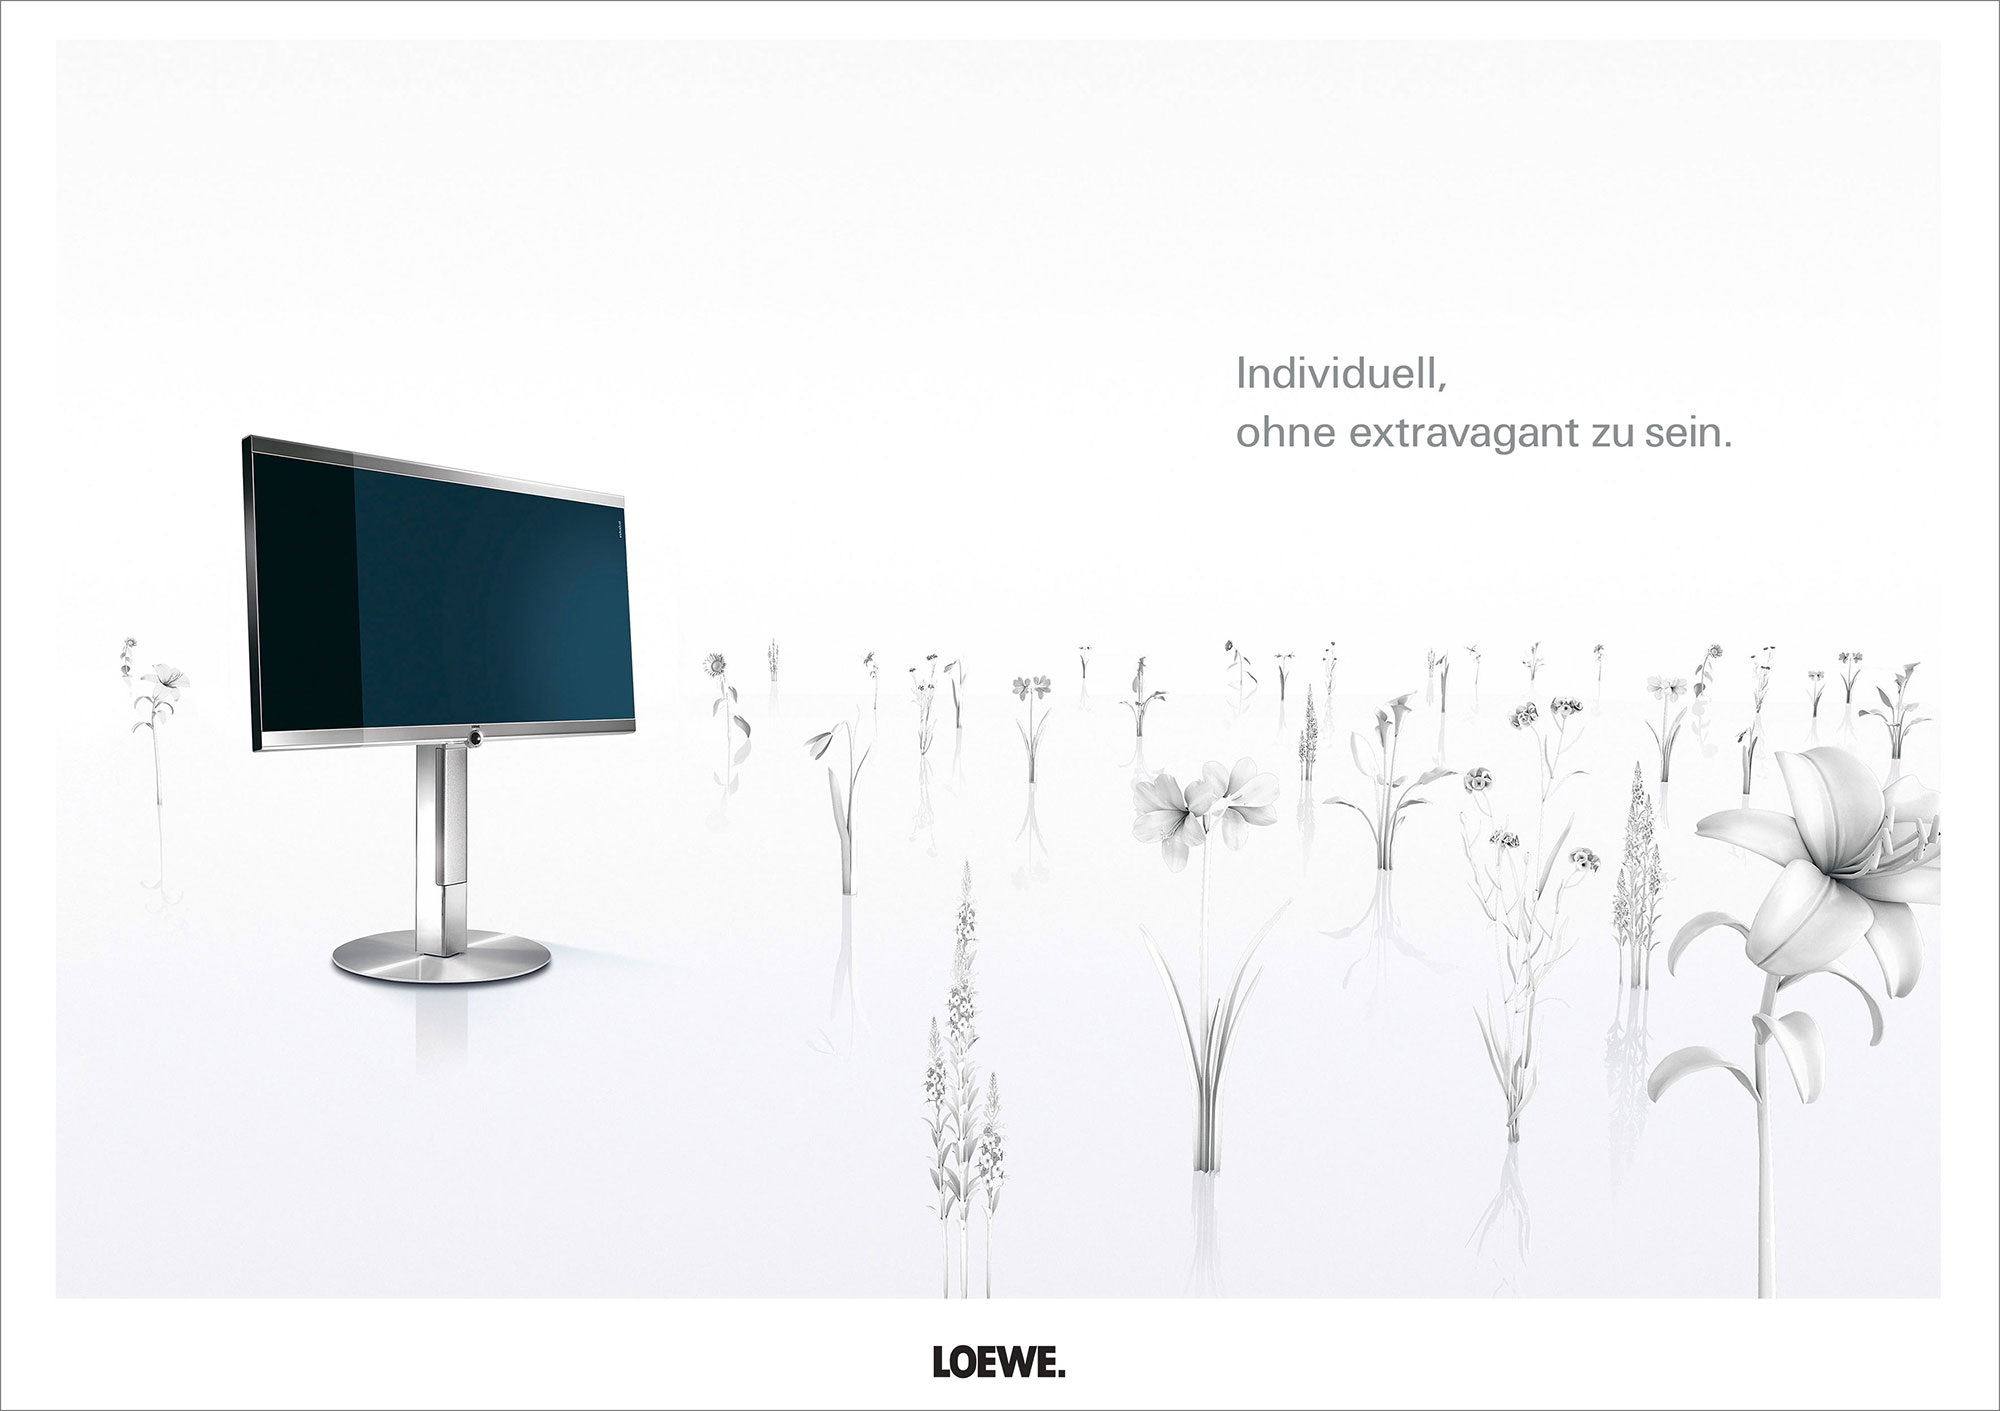 Advertising CGI Rendering 3d Loewe TV Highkey Weiss Blumen individuell extravagant Idris Kolodziej